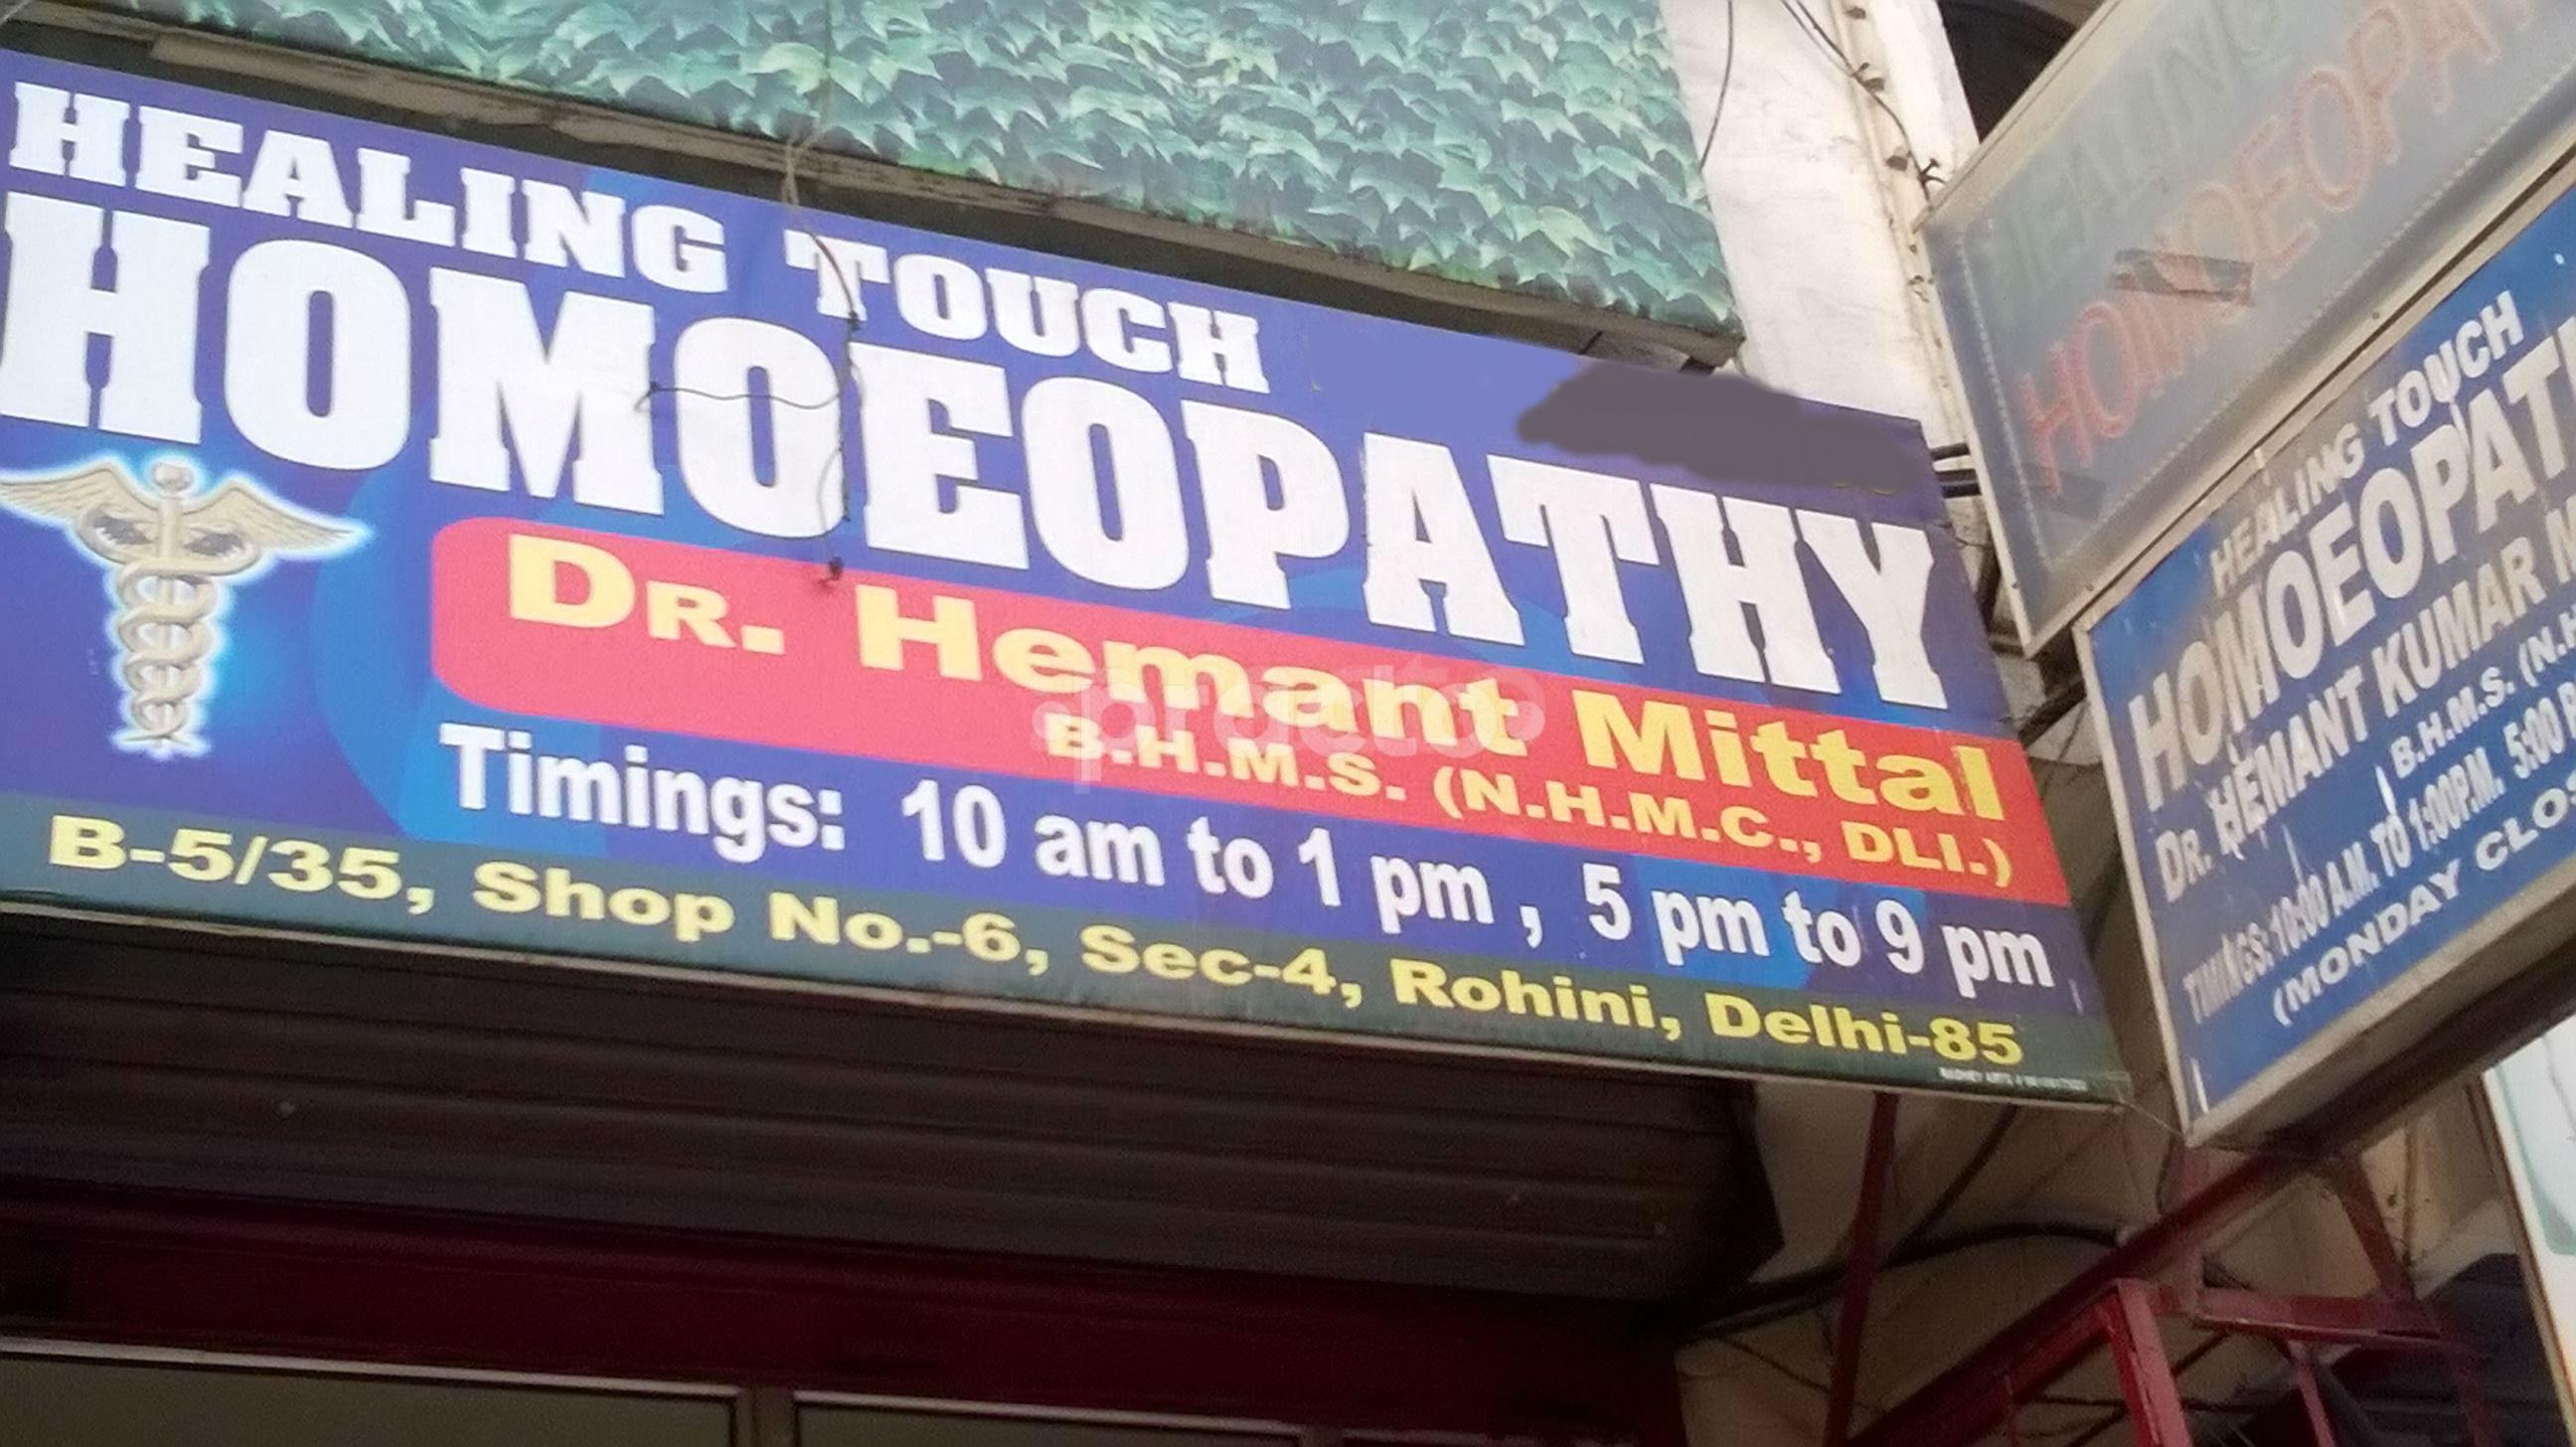 Best Homoeopathy Clinics in Rohini, Delhi - Book Appointment